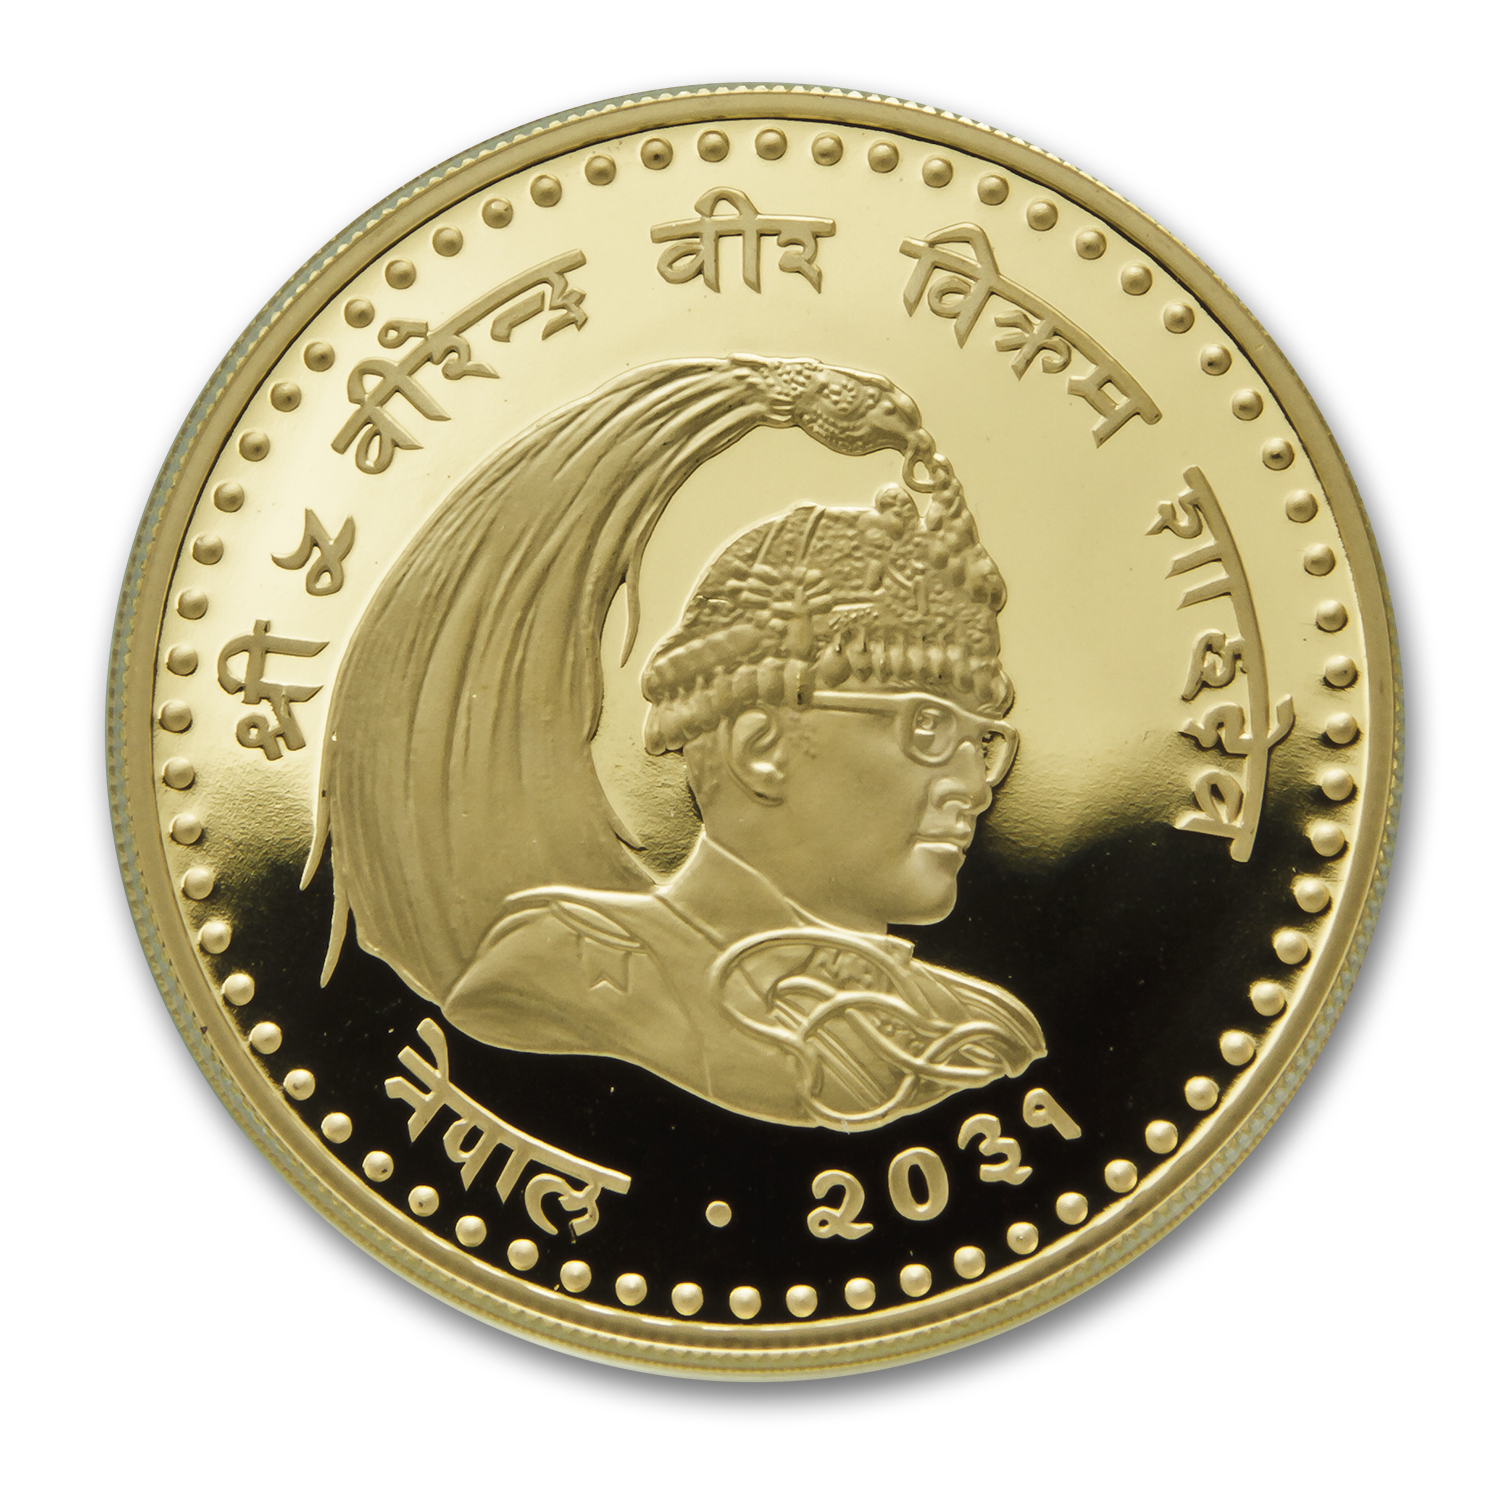 VS2038/1974 Nepal Gold 10.0 G Asarphi Year of the Child Proof